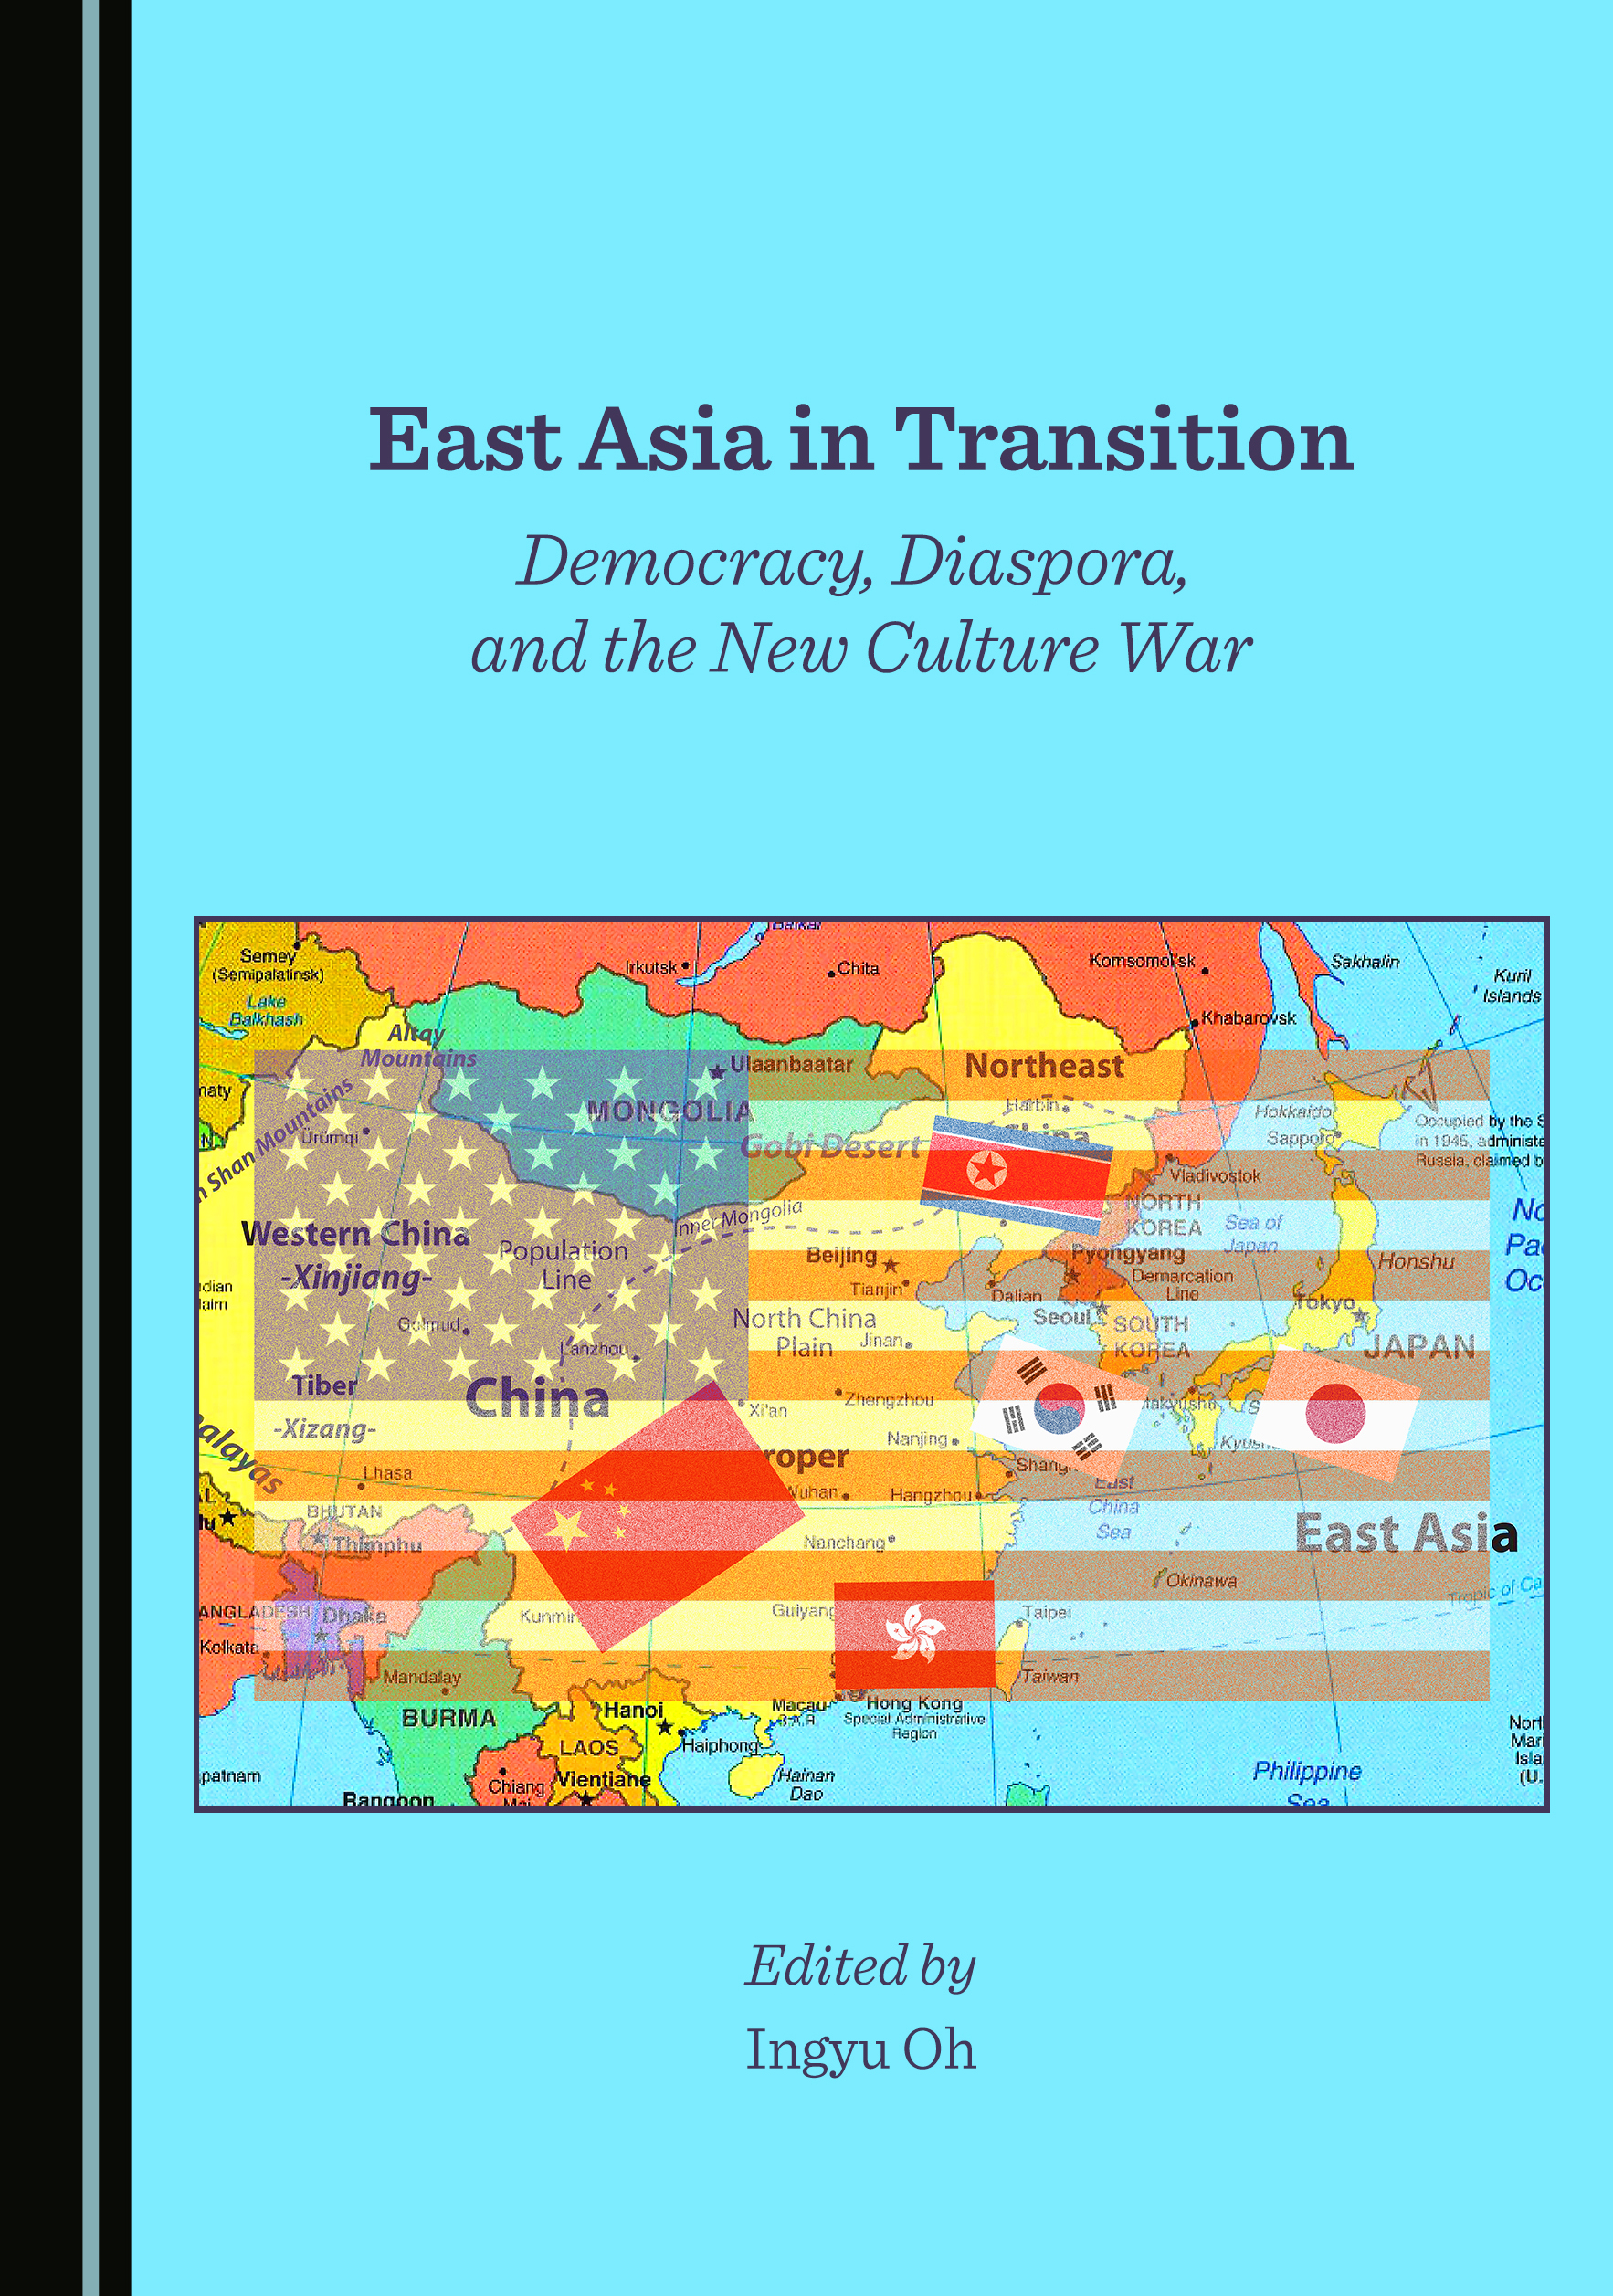 East Asia in Transition: Democracy, Diaspora, and the New Culture War